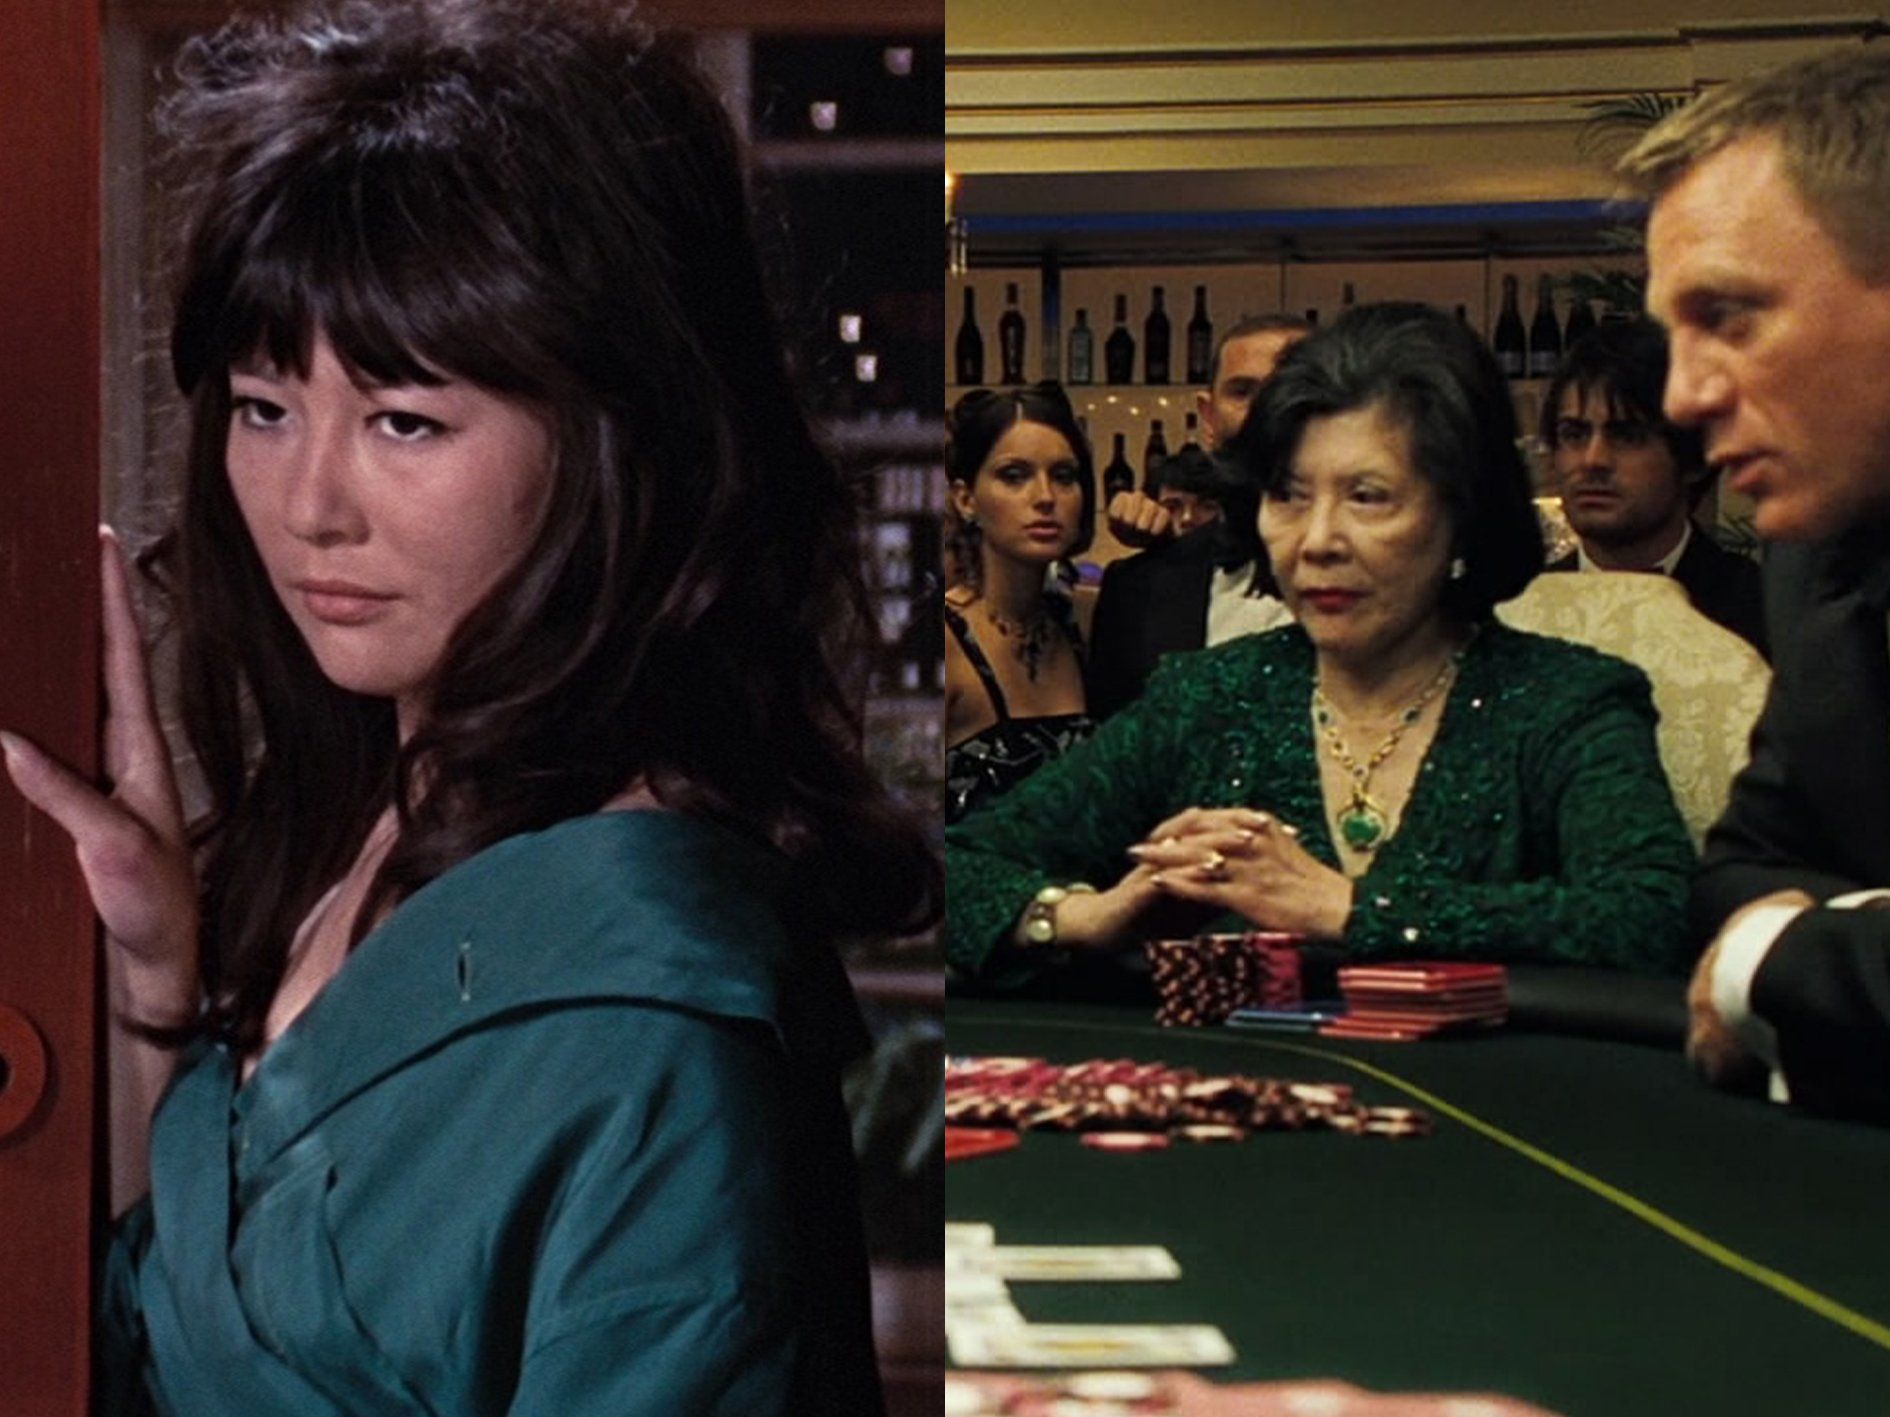 Tsai Chin Ling You Only Live Twice Casino Royale What Your Favourite Bond Girls Look Like Now